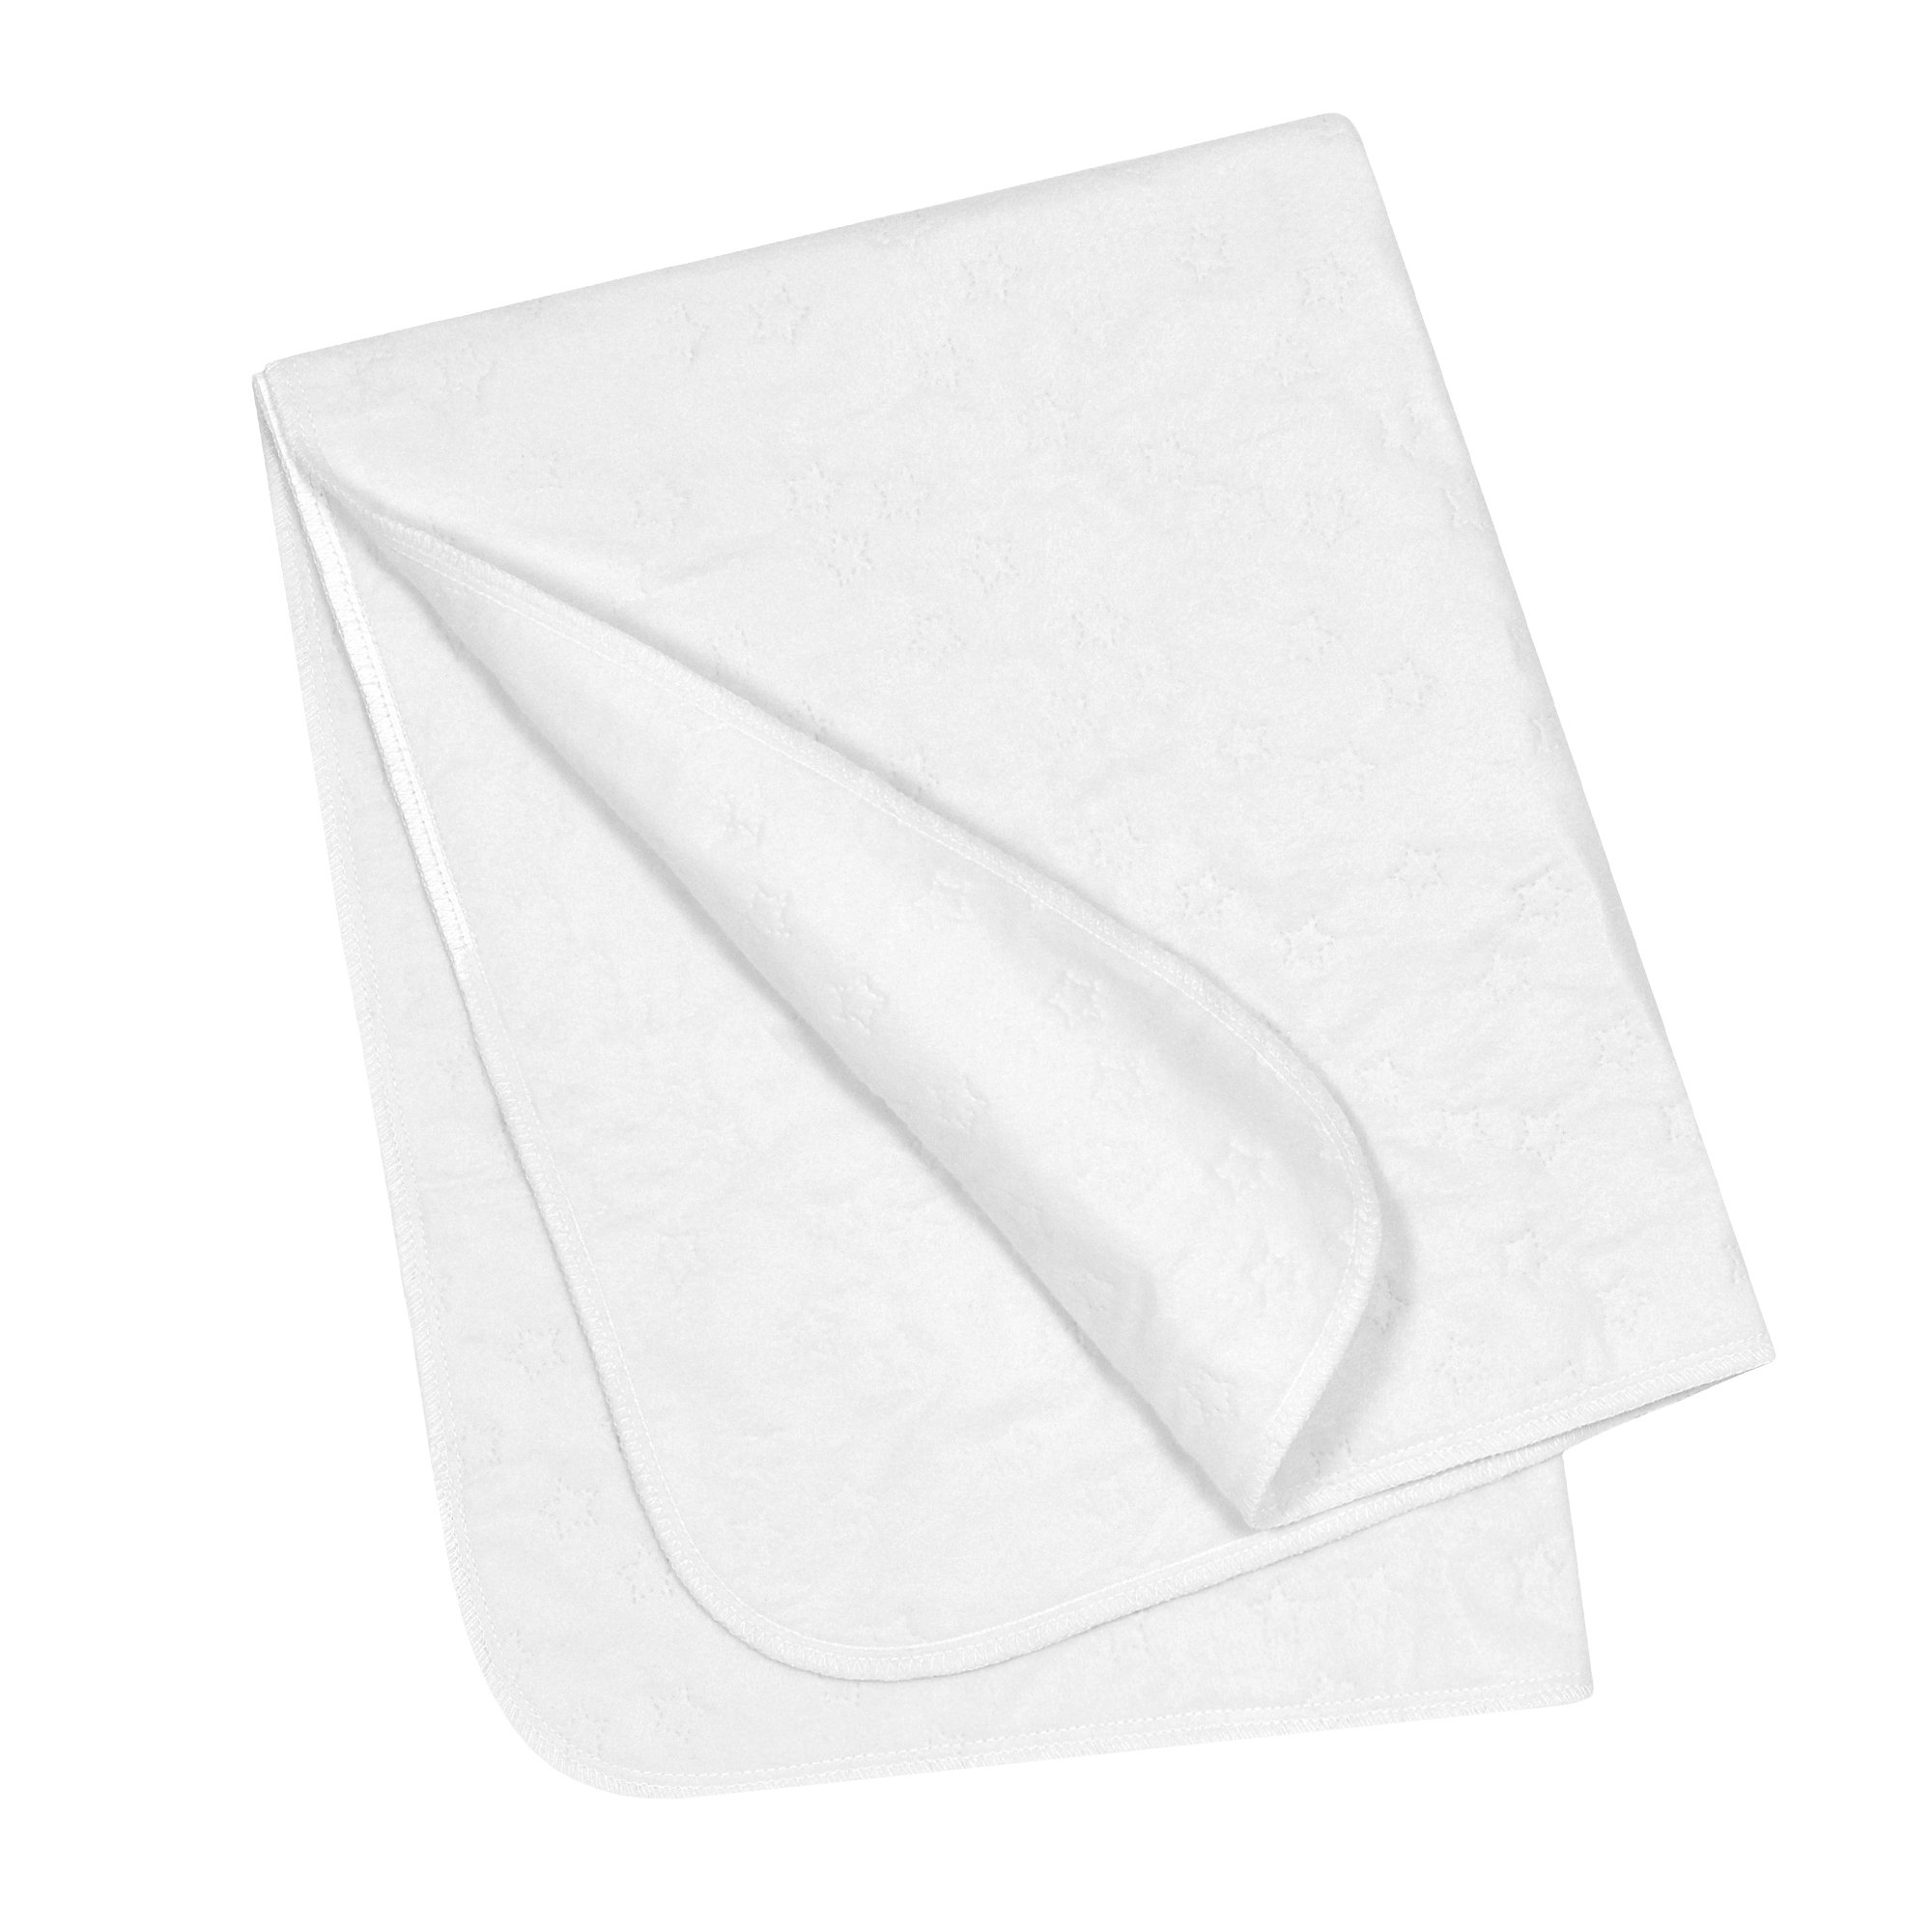 """Gerber Water Resistant Utility Protector Pad, White, 27"""" x 36"""""""